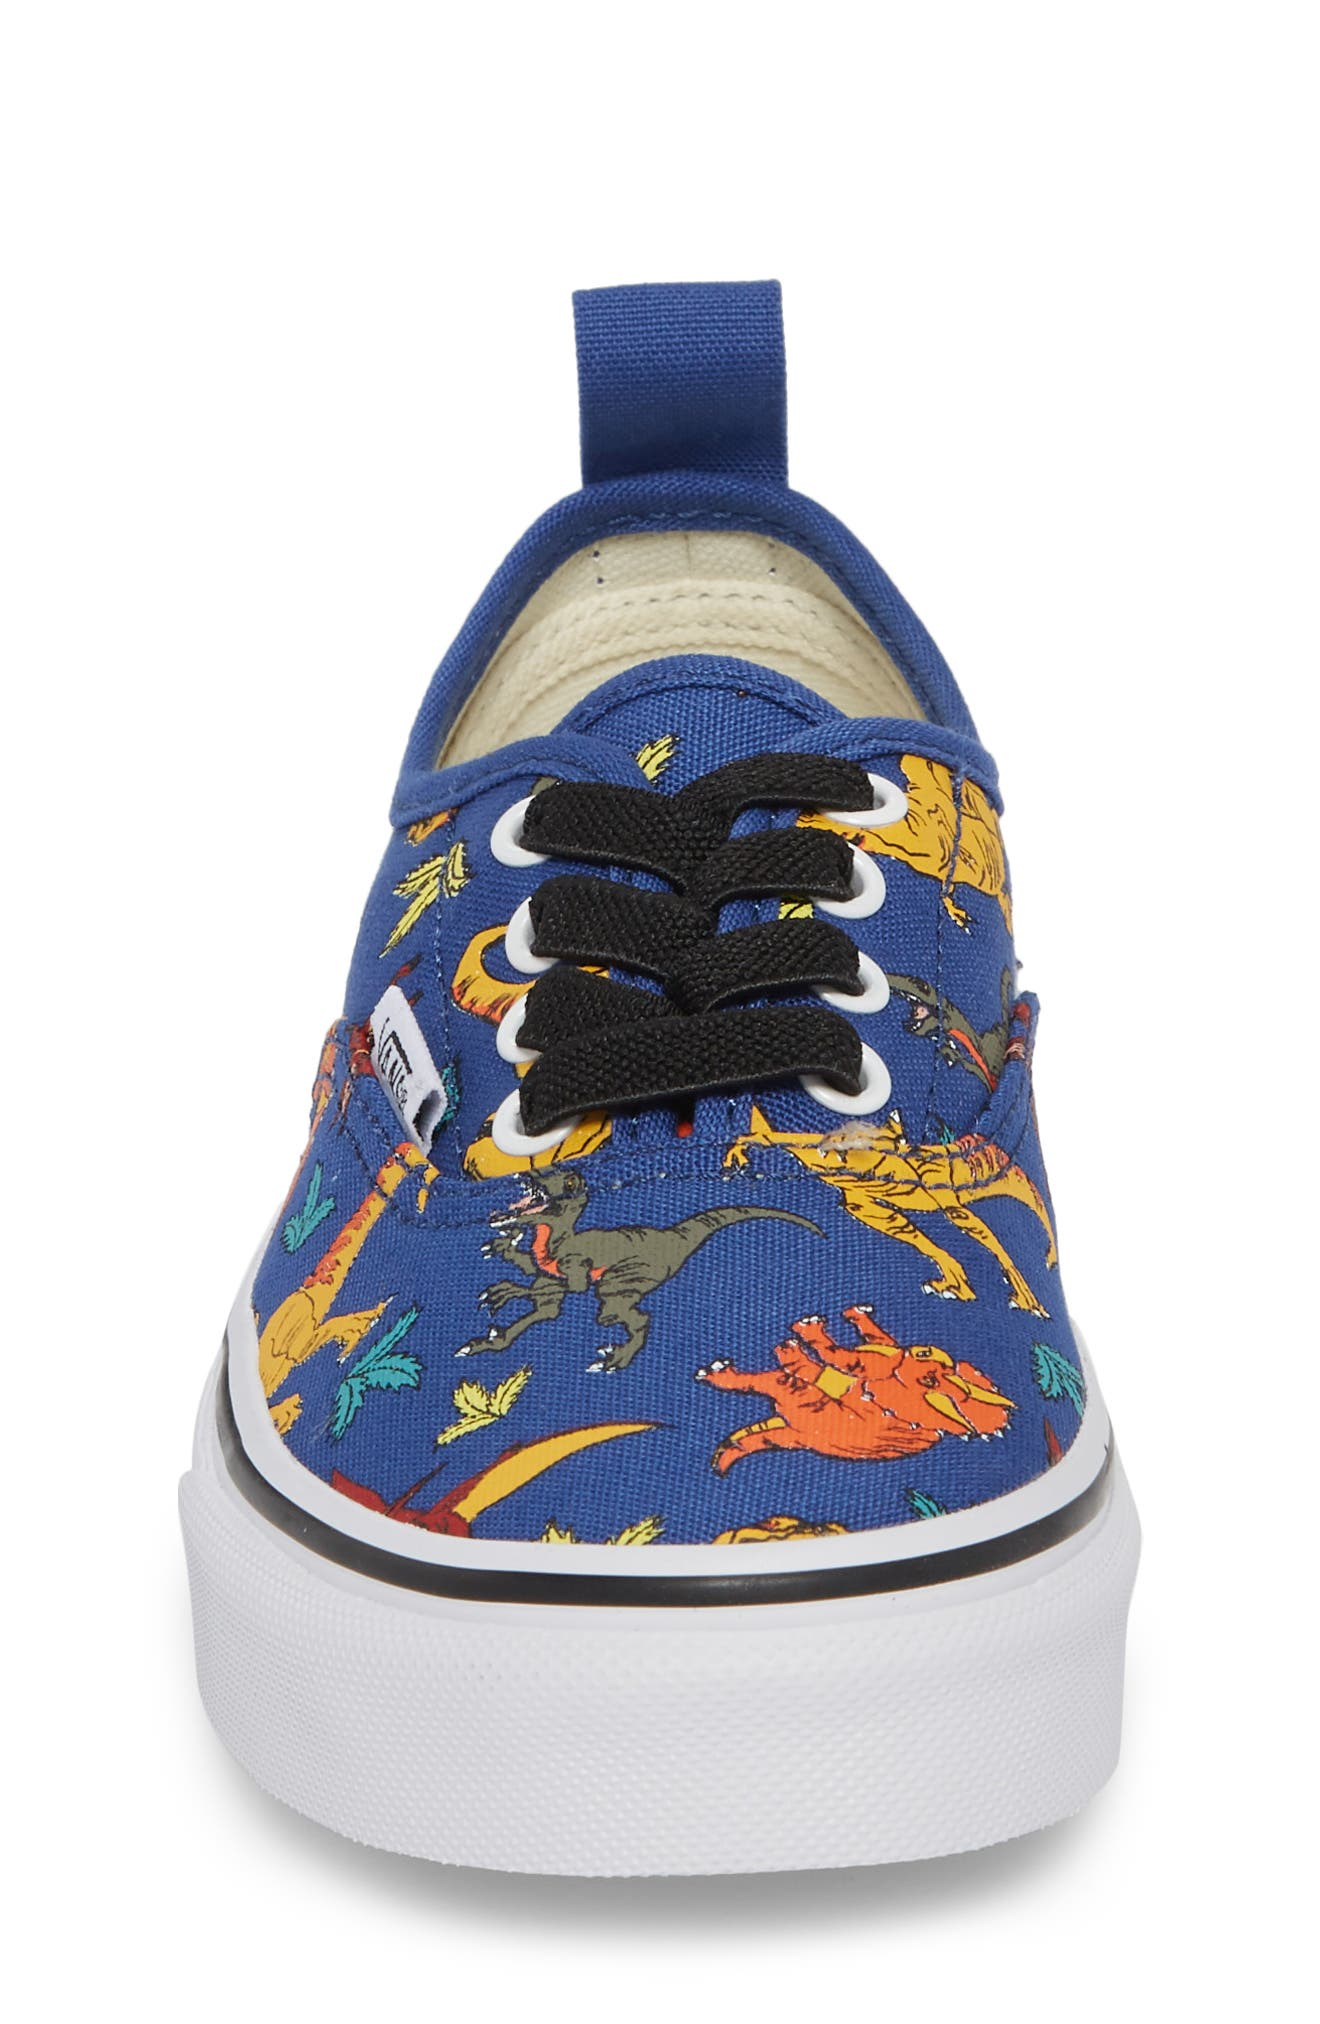 Authentic Elastic Lace Sneaker,                             Alternate thumbnail 4, color,                             Dinosaur Multi/ White